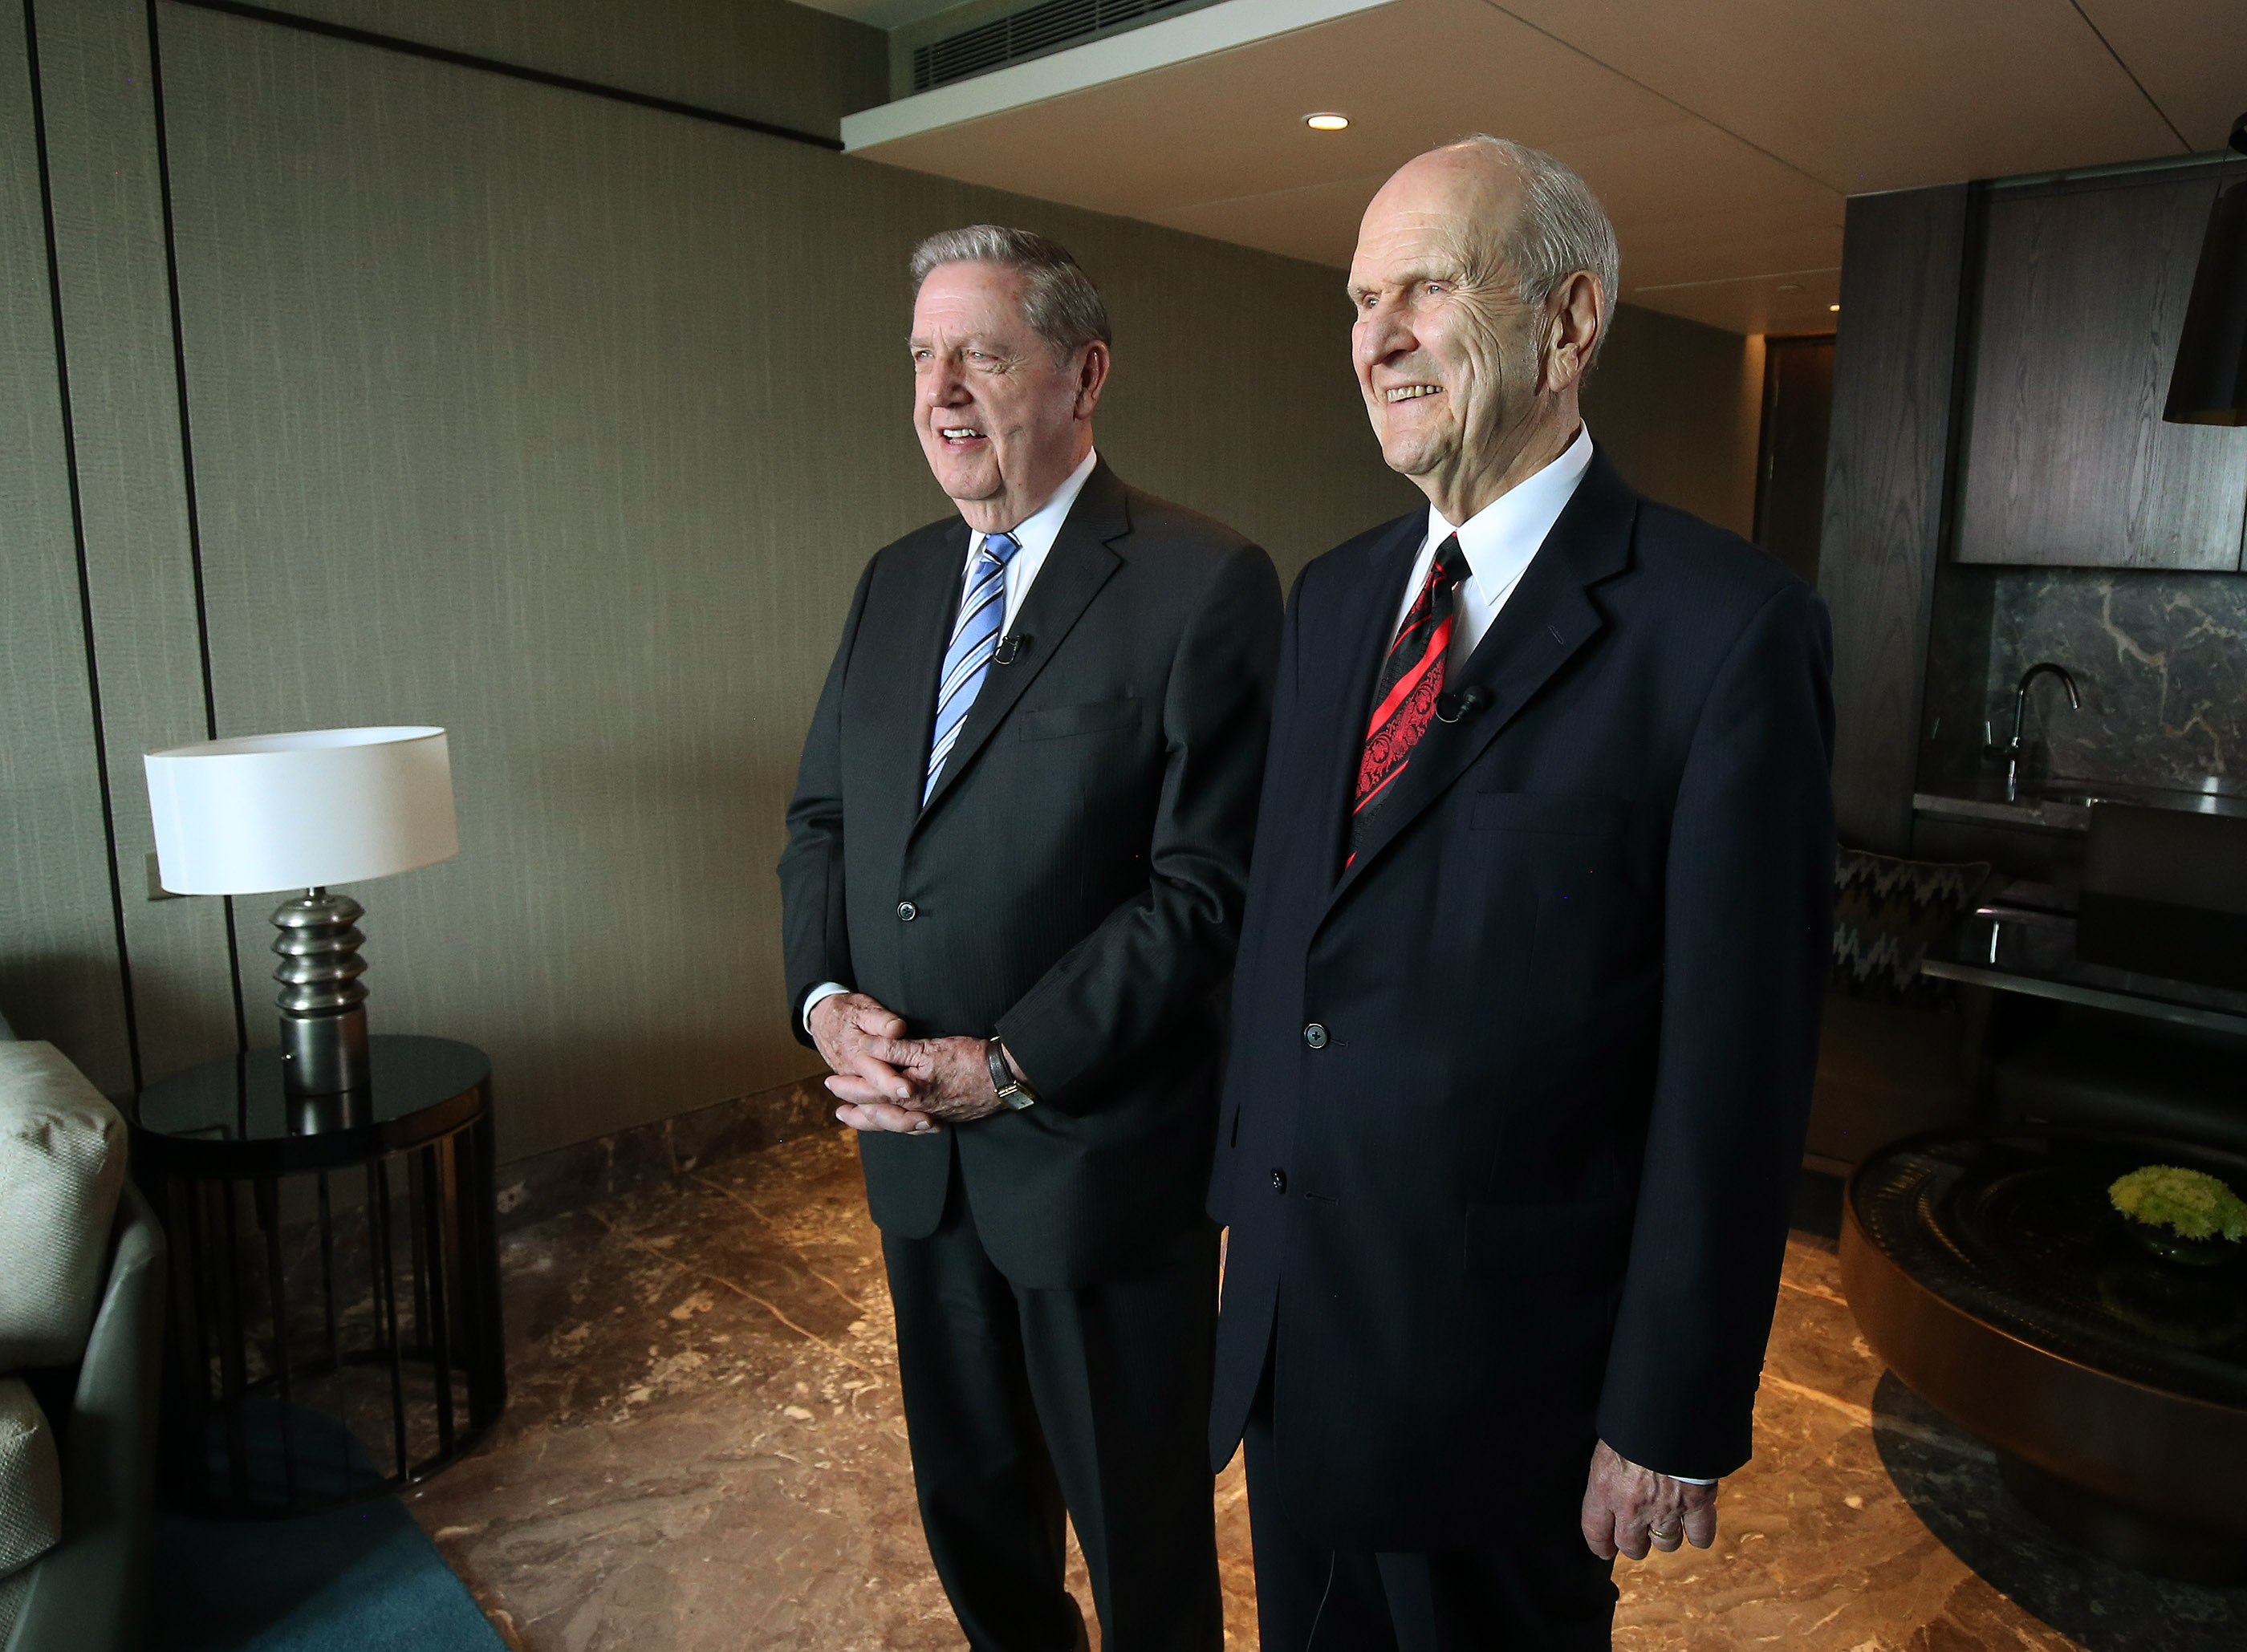 Elder Jeffrey R. Holland of the Quorum of the Twelve Apostles and President Russell M. Nelson smile during a press conference in Bengaluru, India, on Thursday, April 19, 2018.